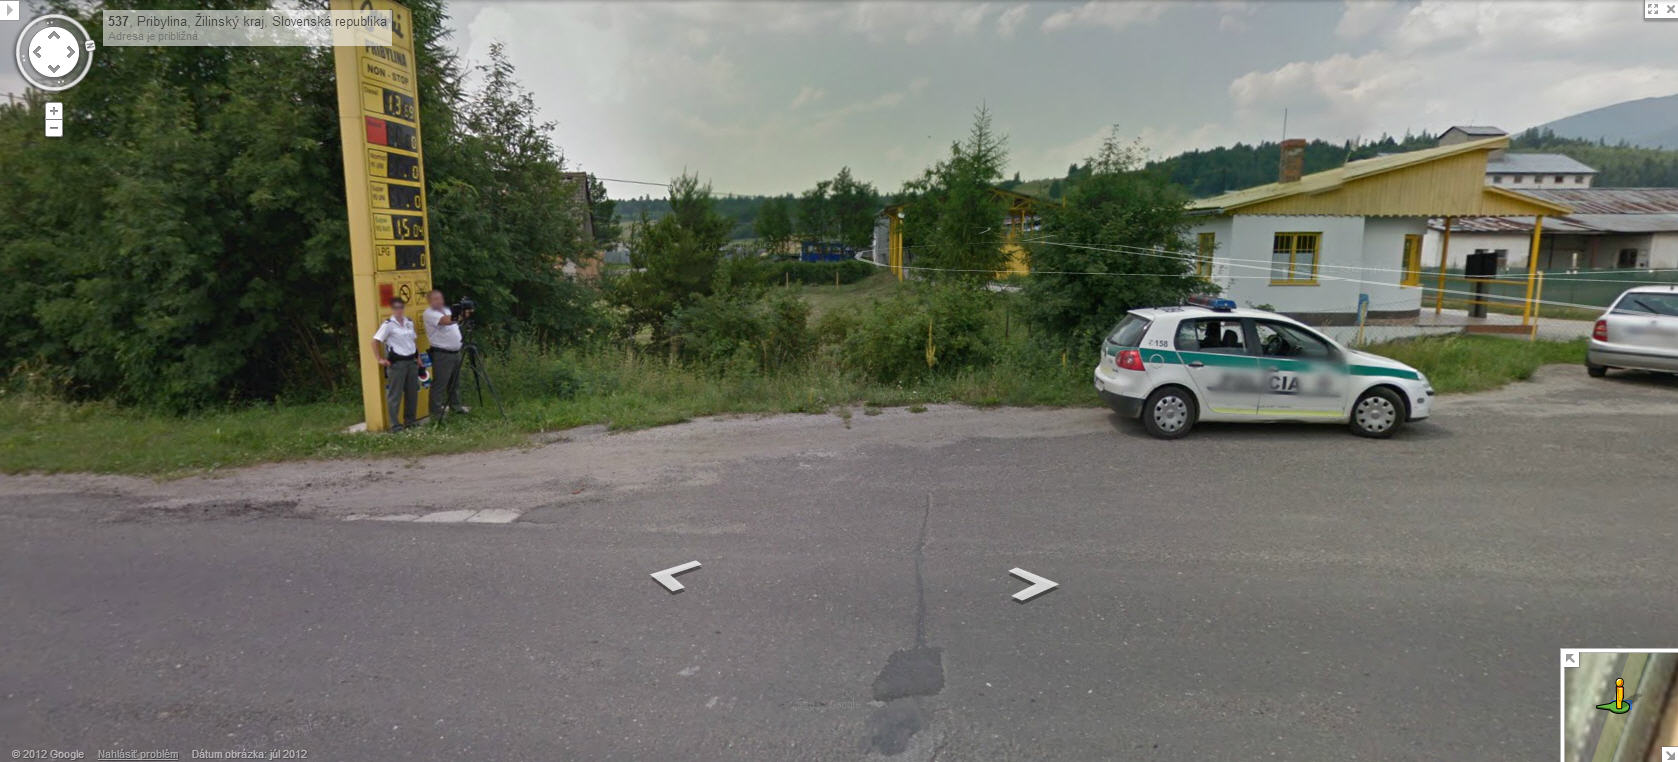 google-street-view-slovakia-captures-a-speed-trap--